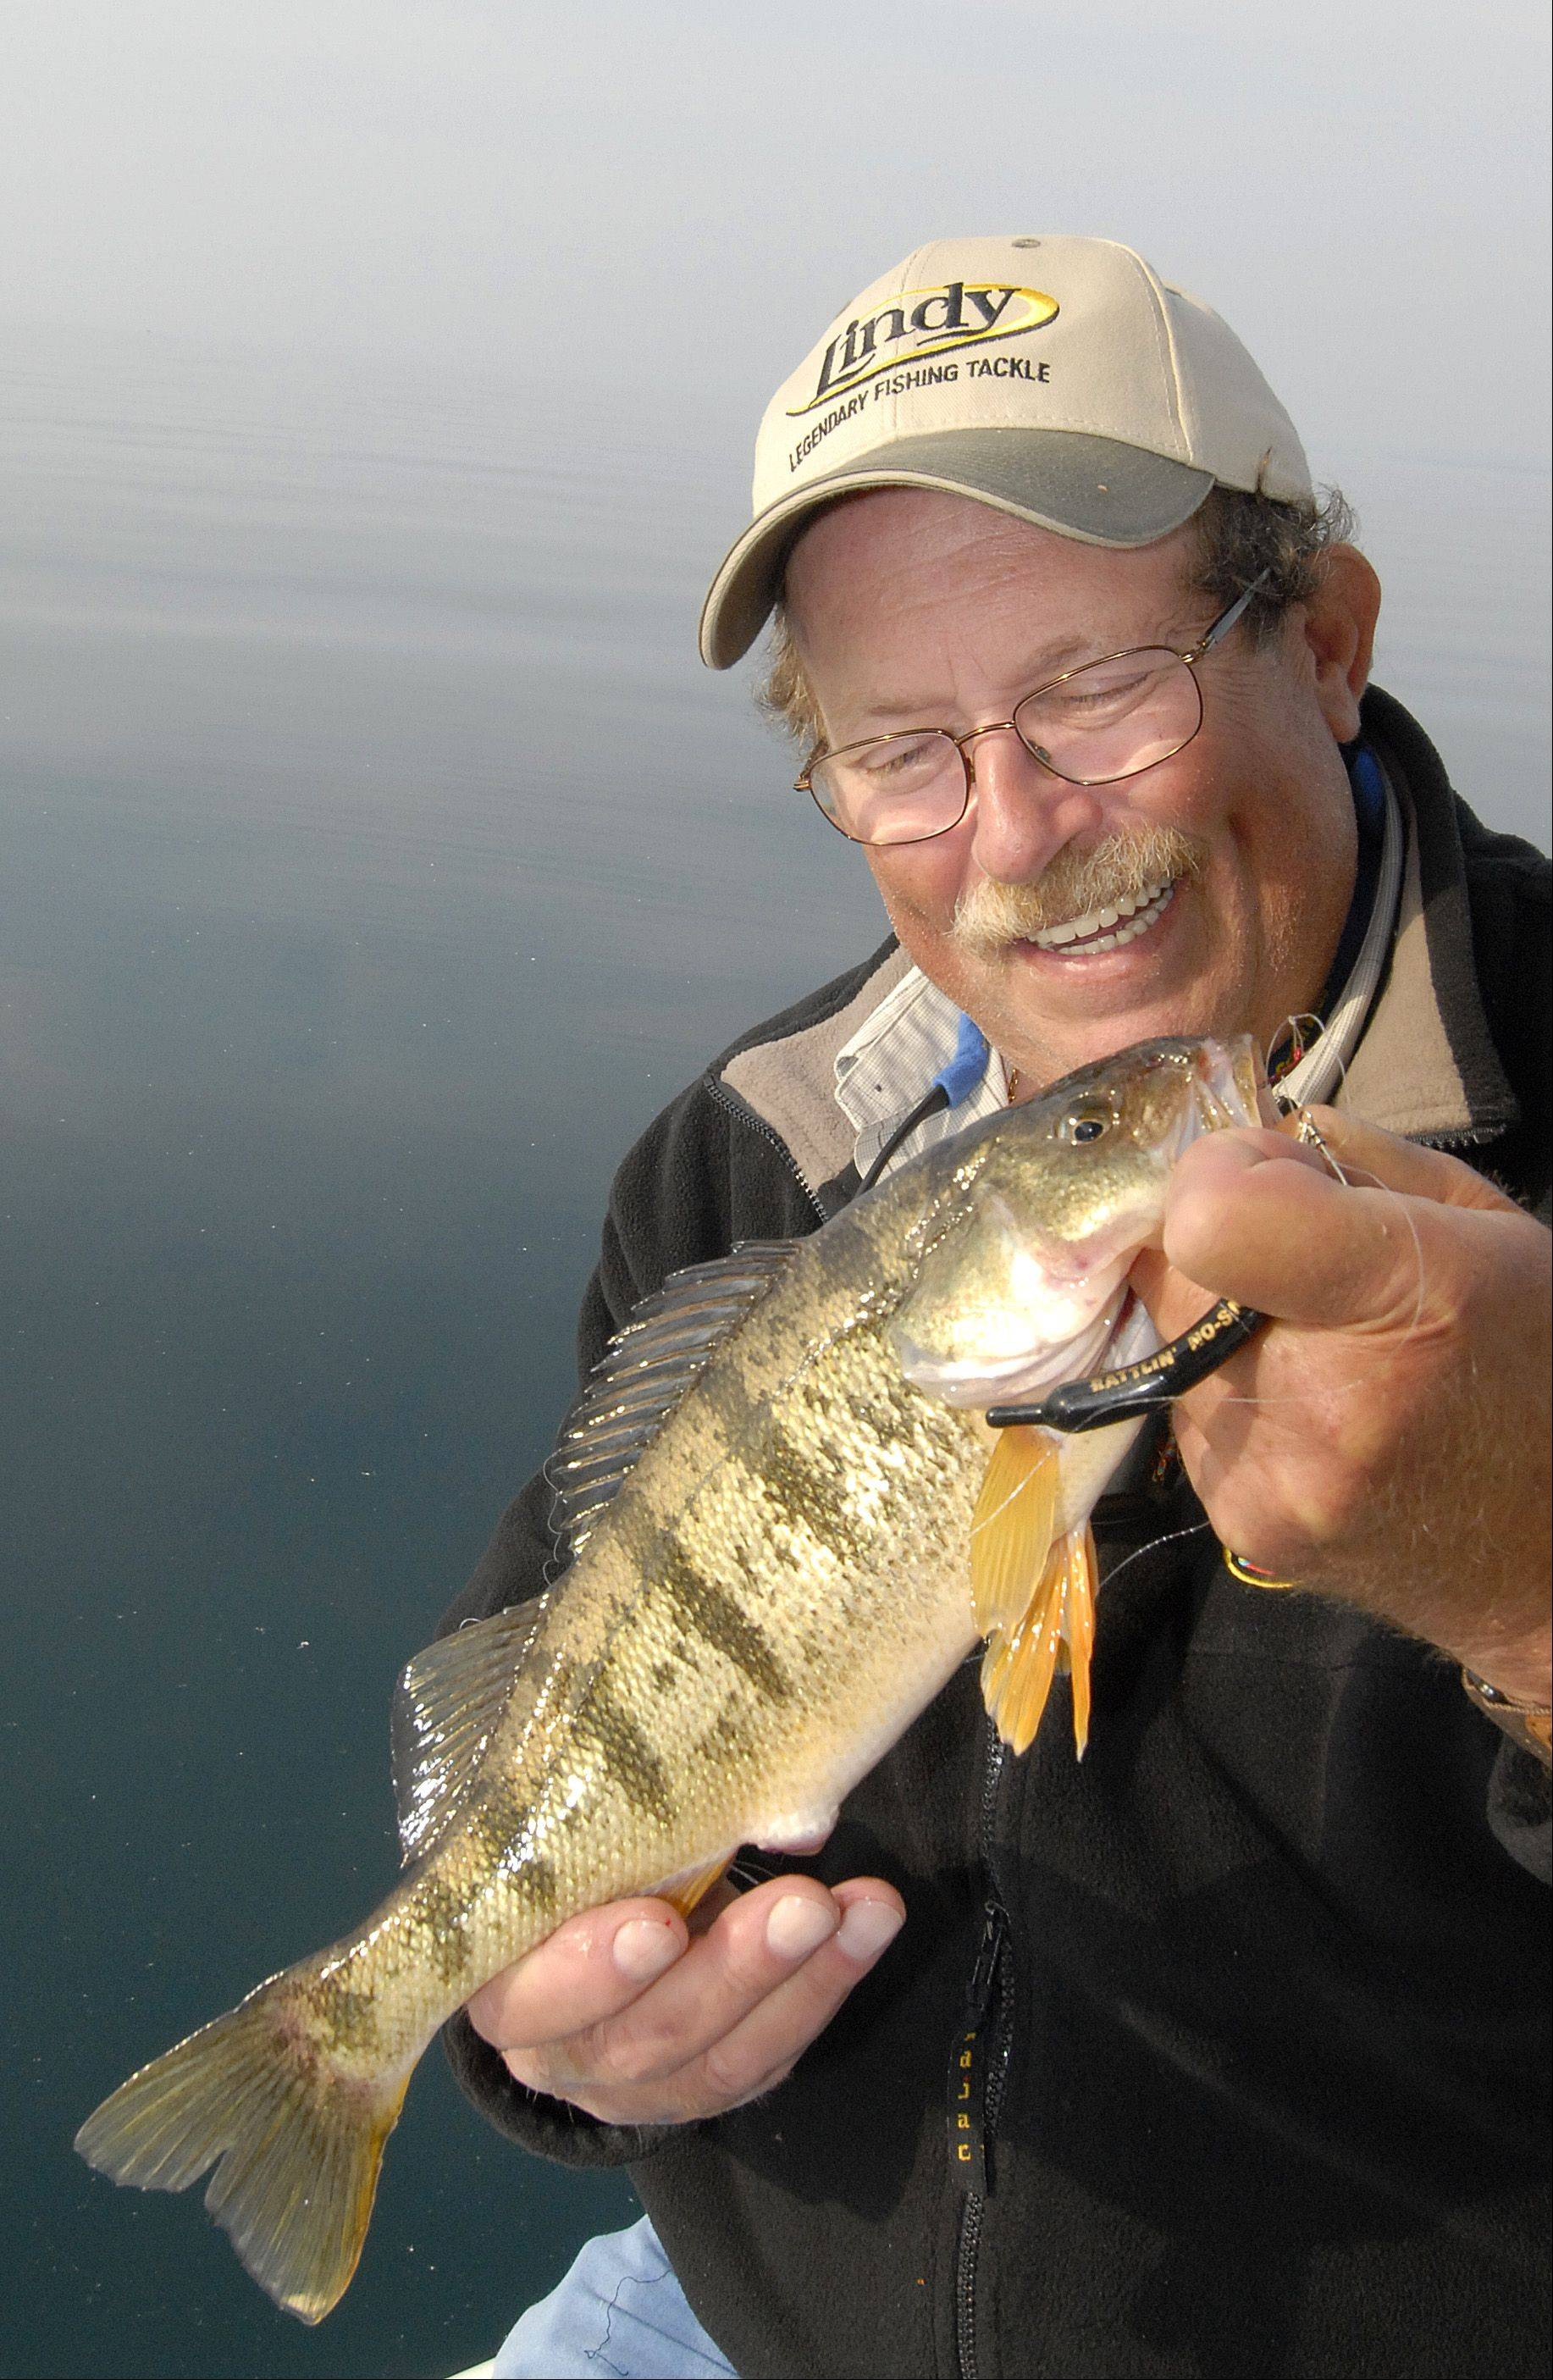 Mike Jackson longs for the days when Lake Michigan didn't have any limits on when local anglers could go after perch. He misses those days when adults weren't banned from fishing for perch in July. And he's calling for the state to end that ban.